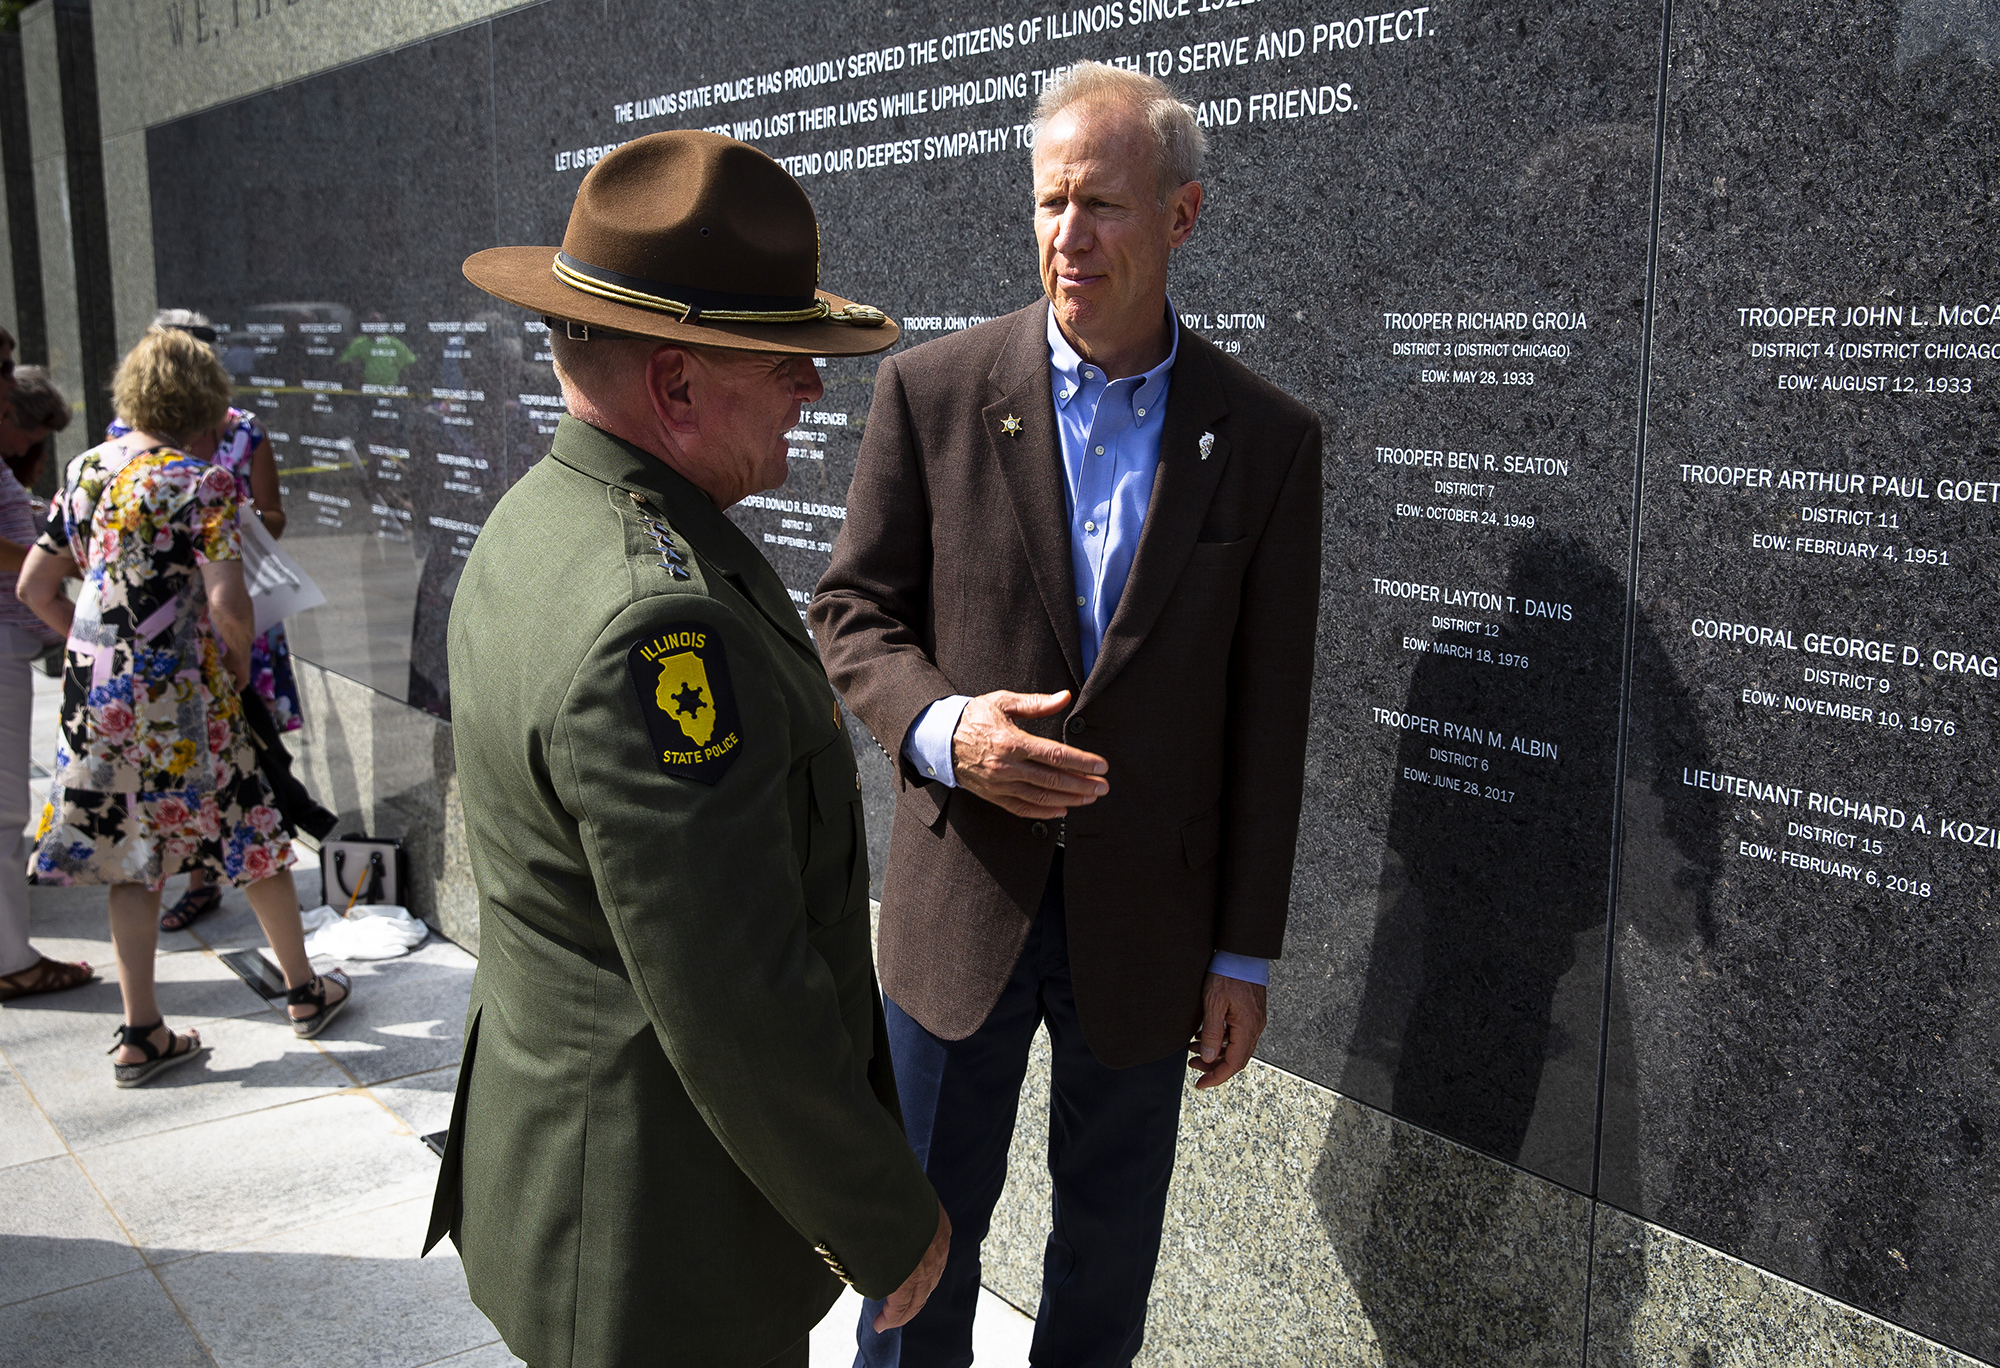 Gov. Bruce Rauner tours the new Illinois State Police Memorial Park with State Police Director Leo Schmitz following a dedication ceremony Tuesday, Oct. 2, 2018 at 615 W. Lawrence in Springfield, Ill. [Rich Saal/The State Journal-Register]